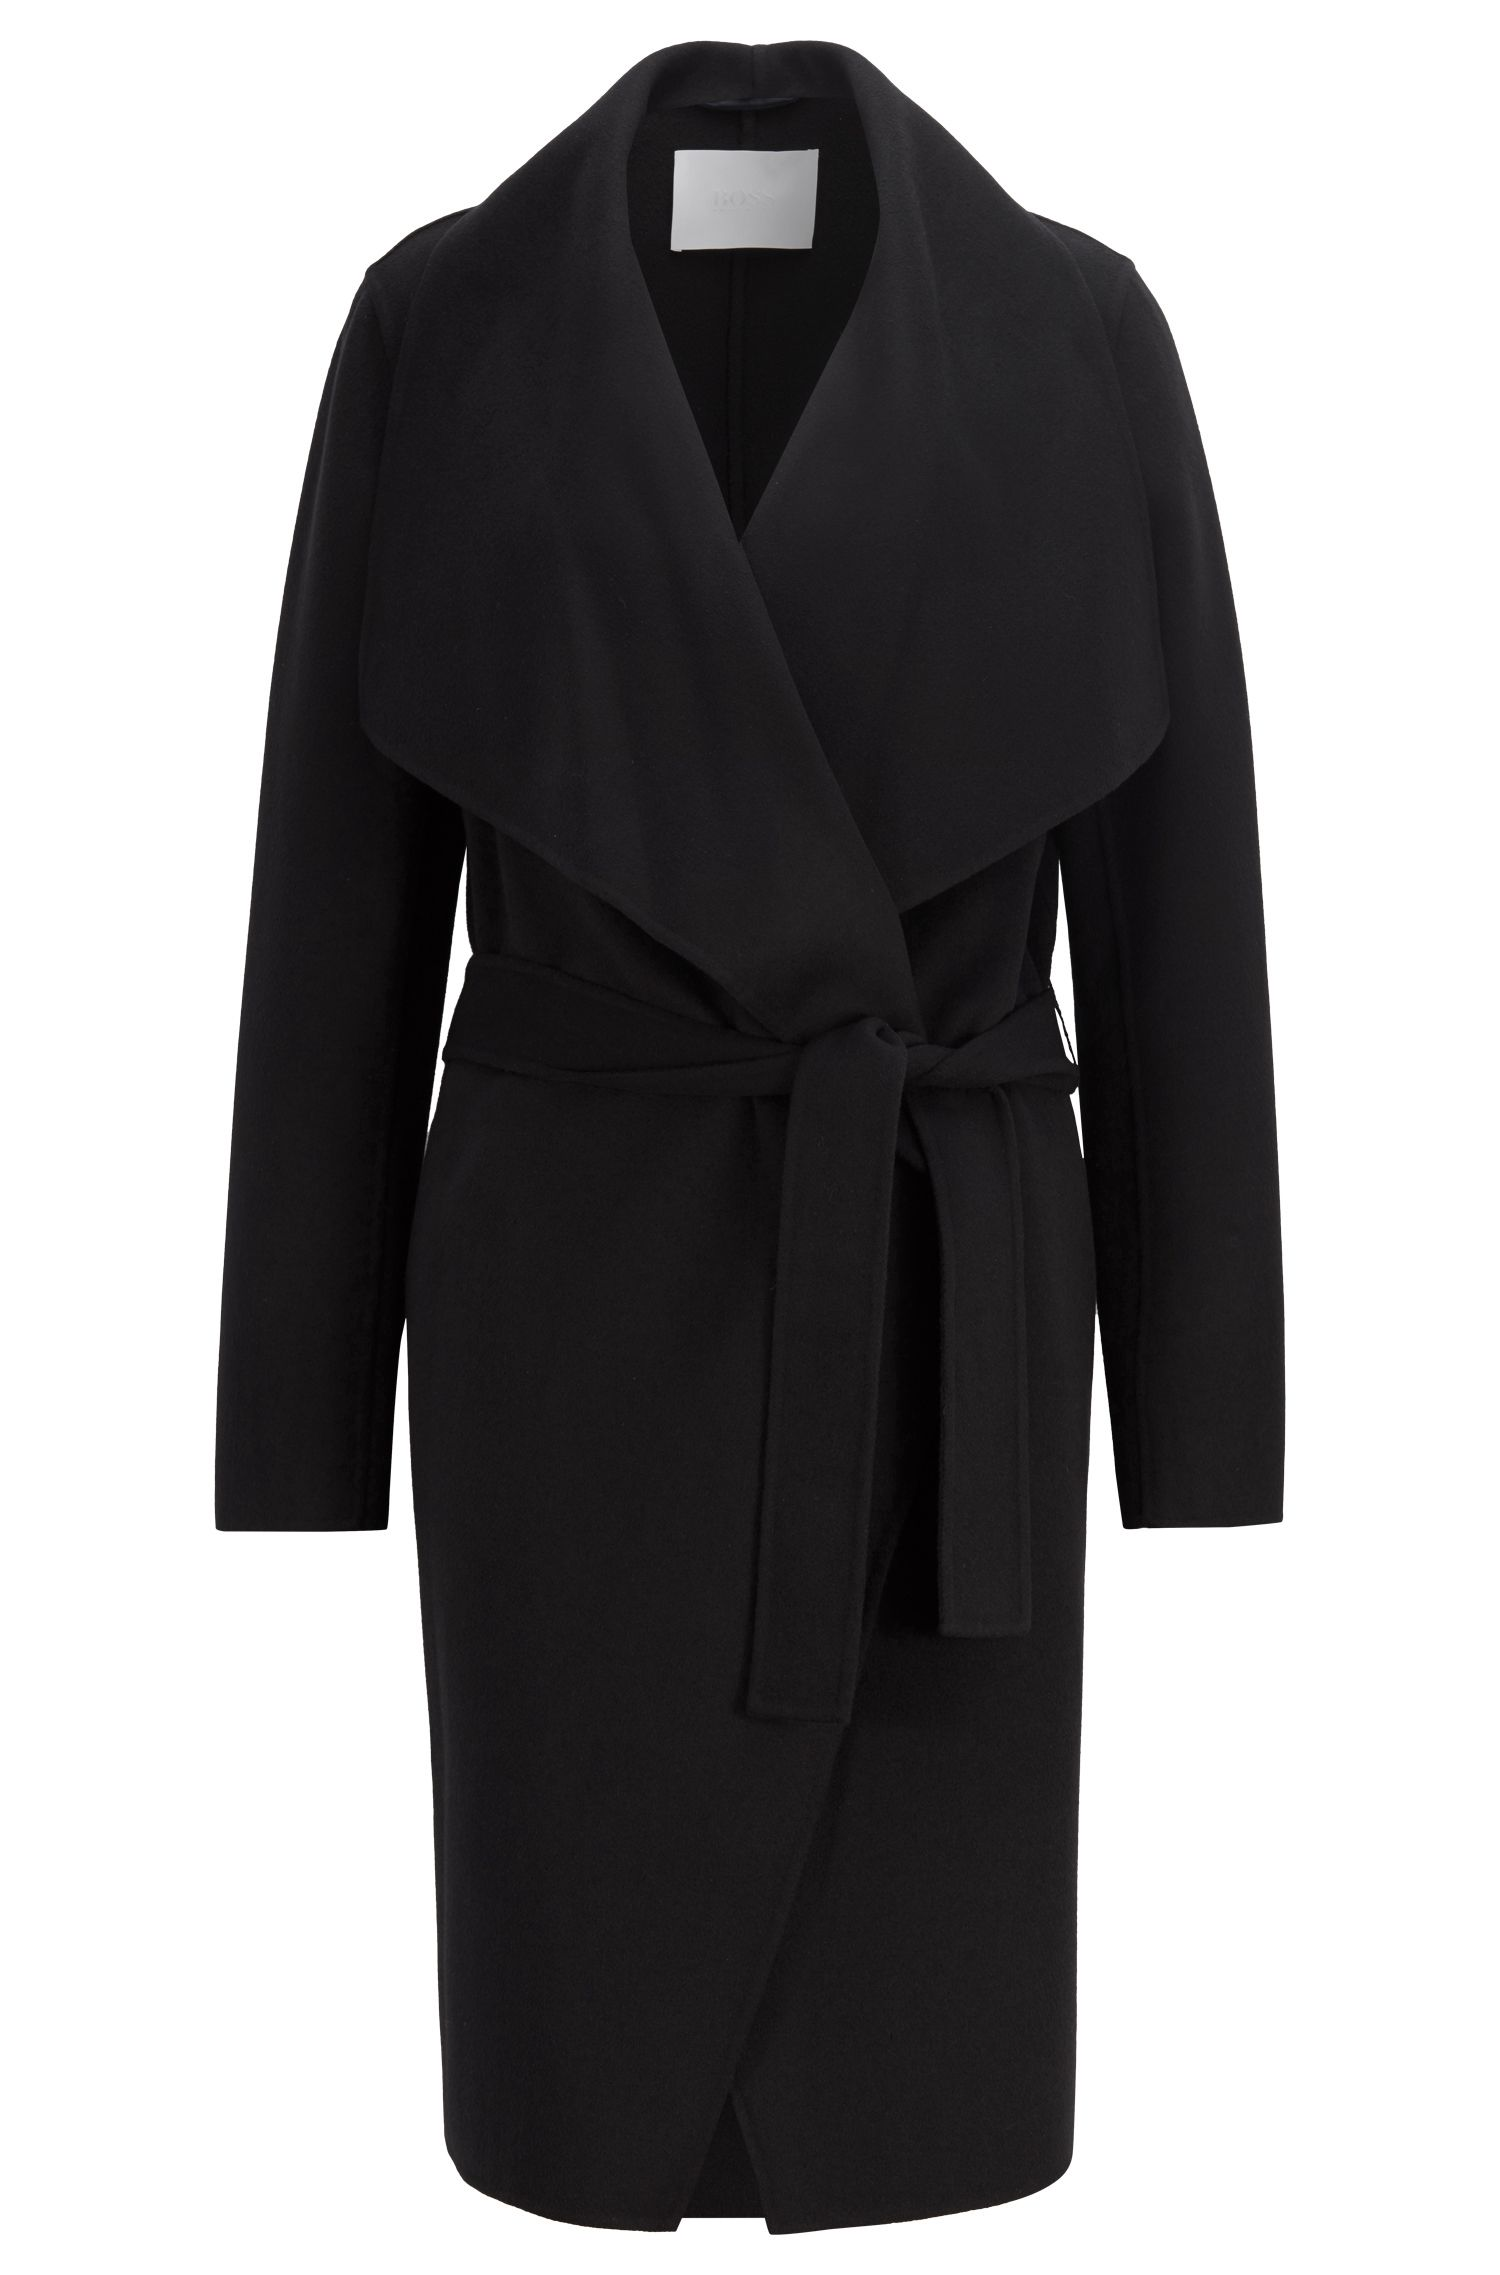 Waterfall coat in a double-faced wool blend